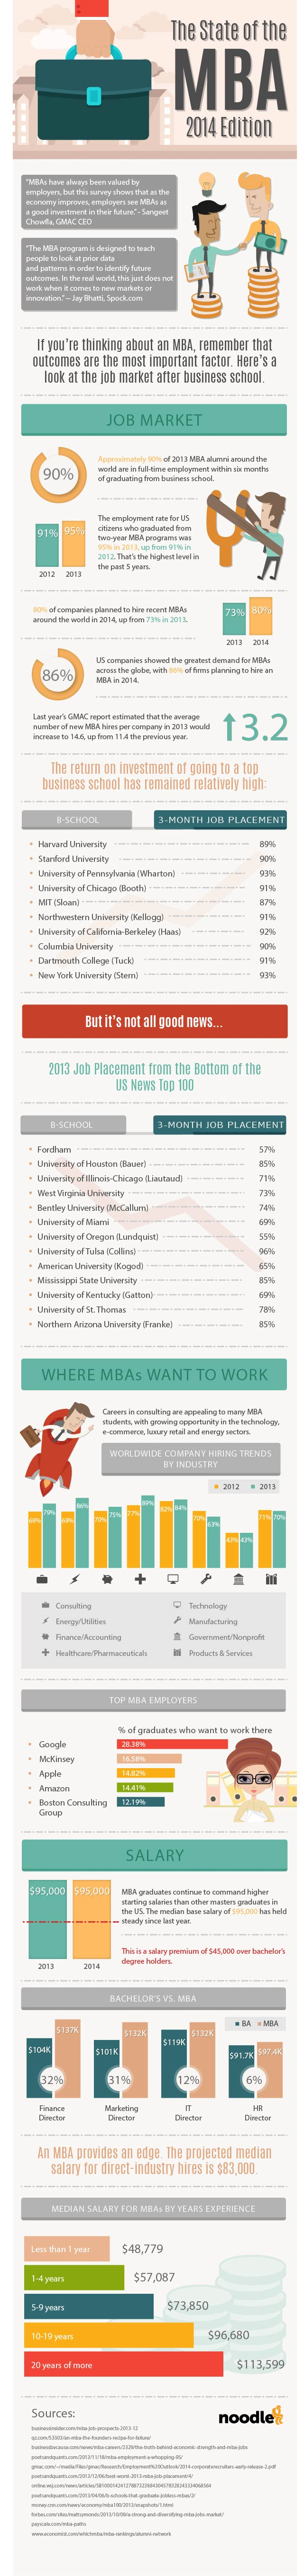 Good 10 Flexible Jobs For People With Masteru0027s Degrees